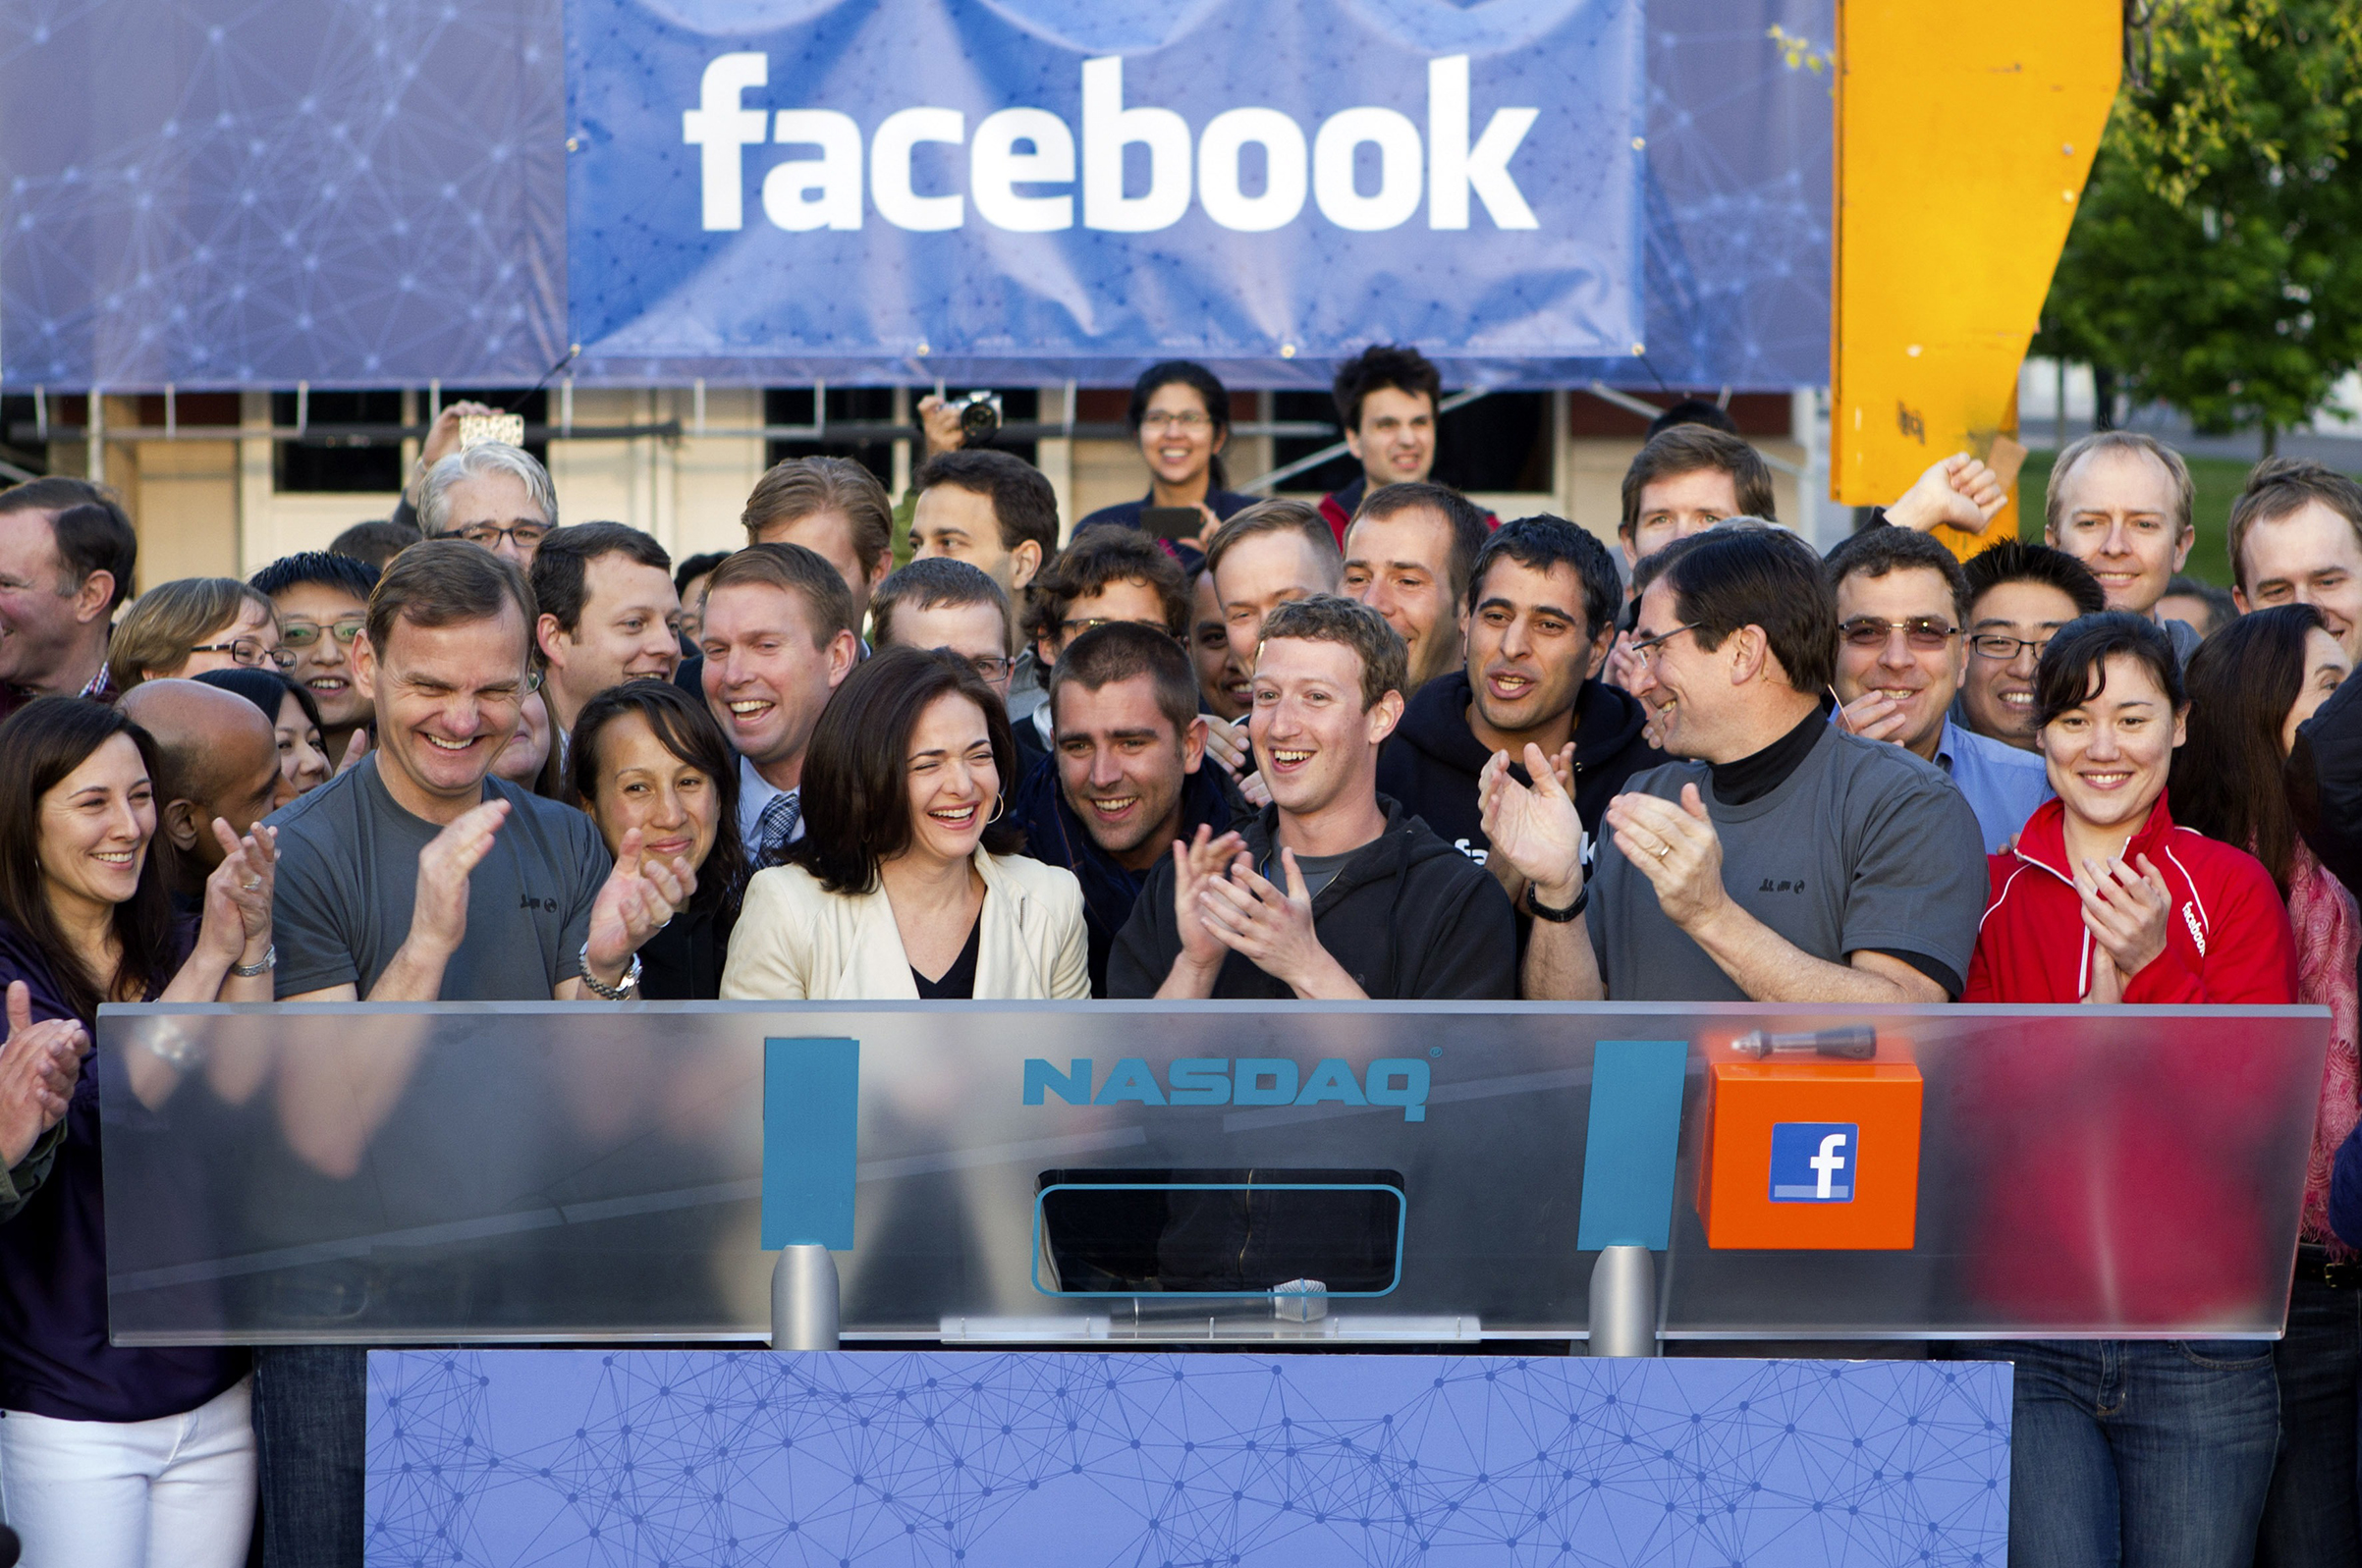 Zuckerberg and Sandberg celebrate Facebook's May 18, 2012, IPO, which would come to be seen as a wild success